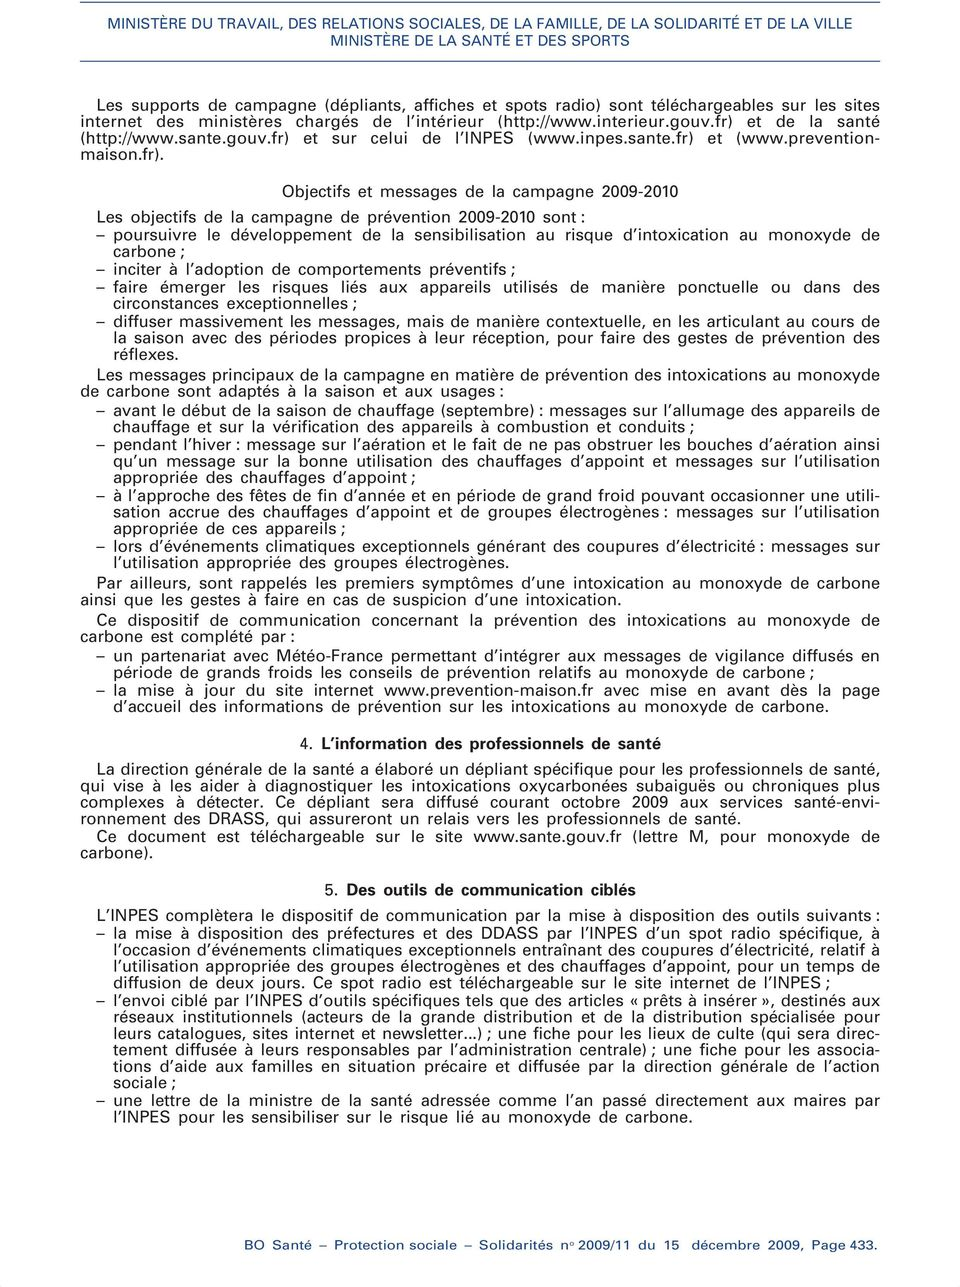 prévention 2009-2010 sont : poursuivre le développement de la sensibilisation au risque d intoxication au monoxyde de carbone ; inciter à l adoption de comportements préventifs ; faire émerger les